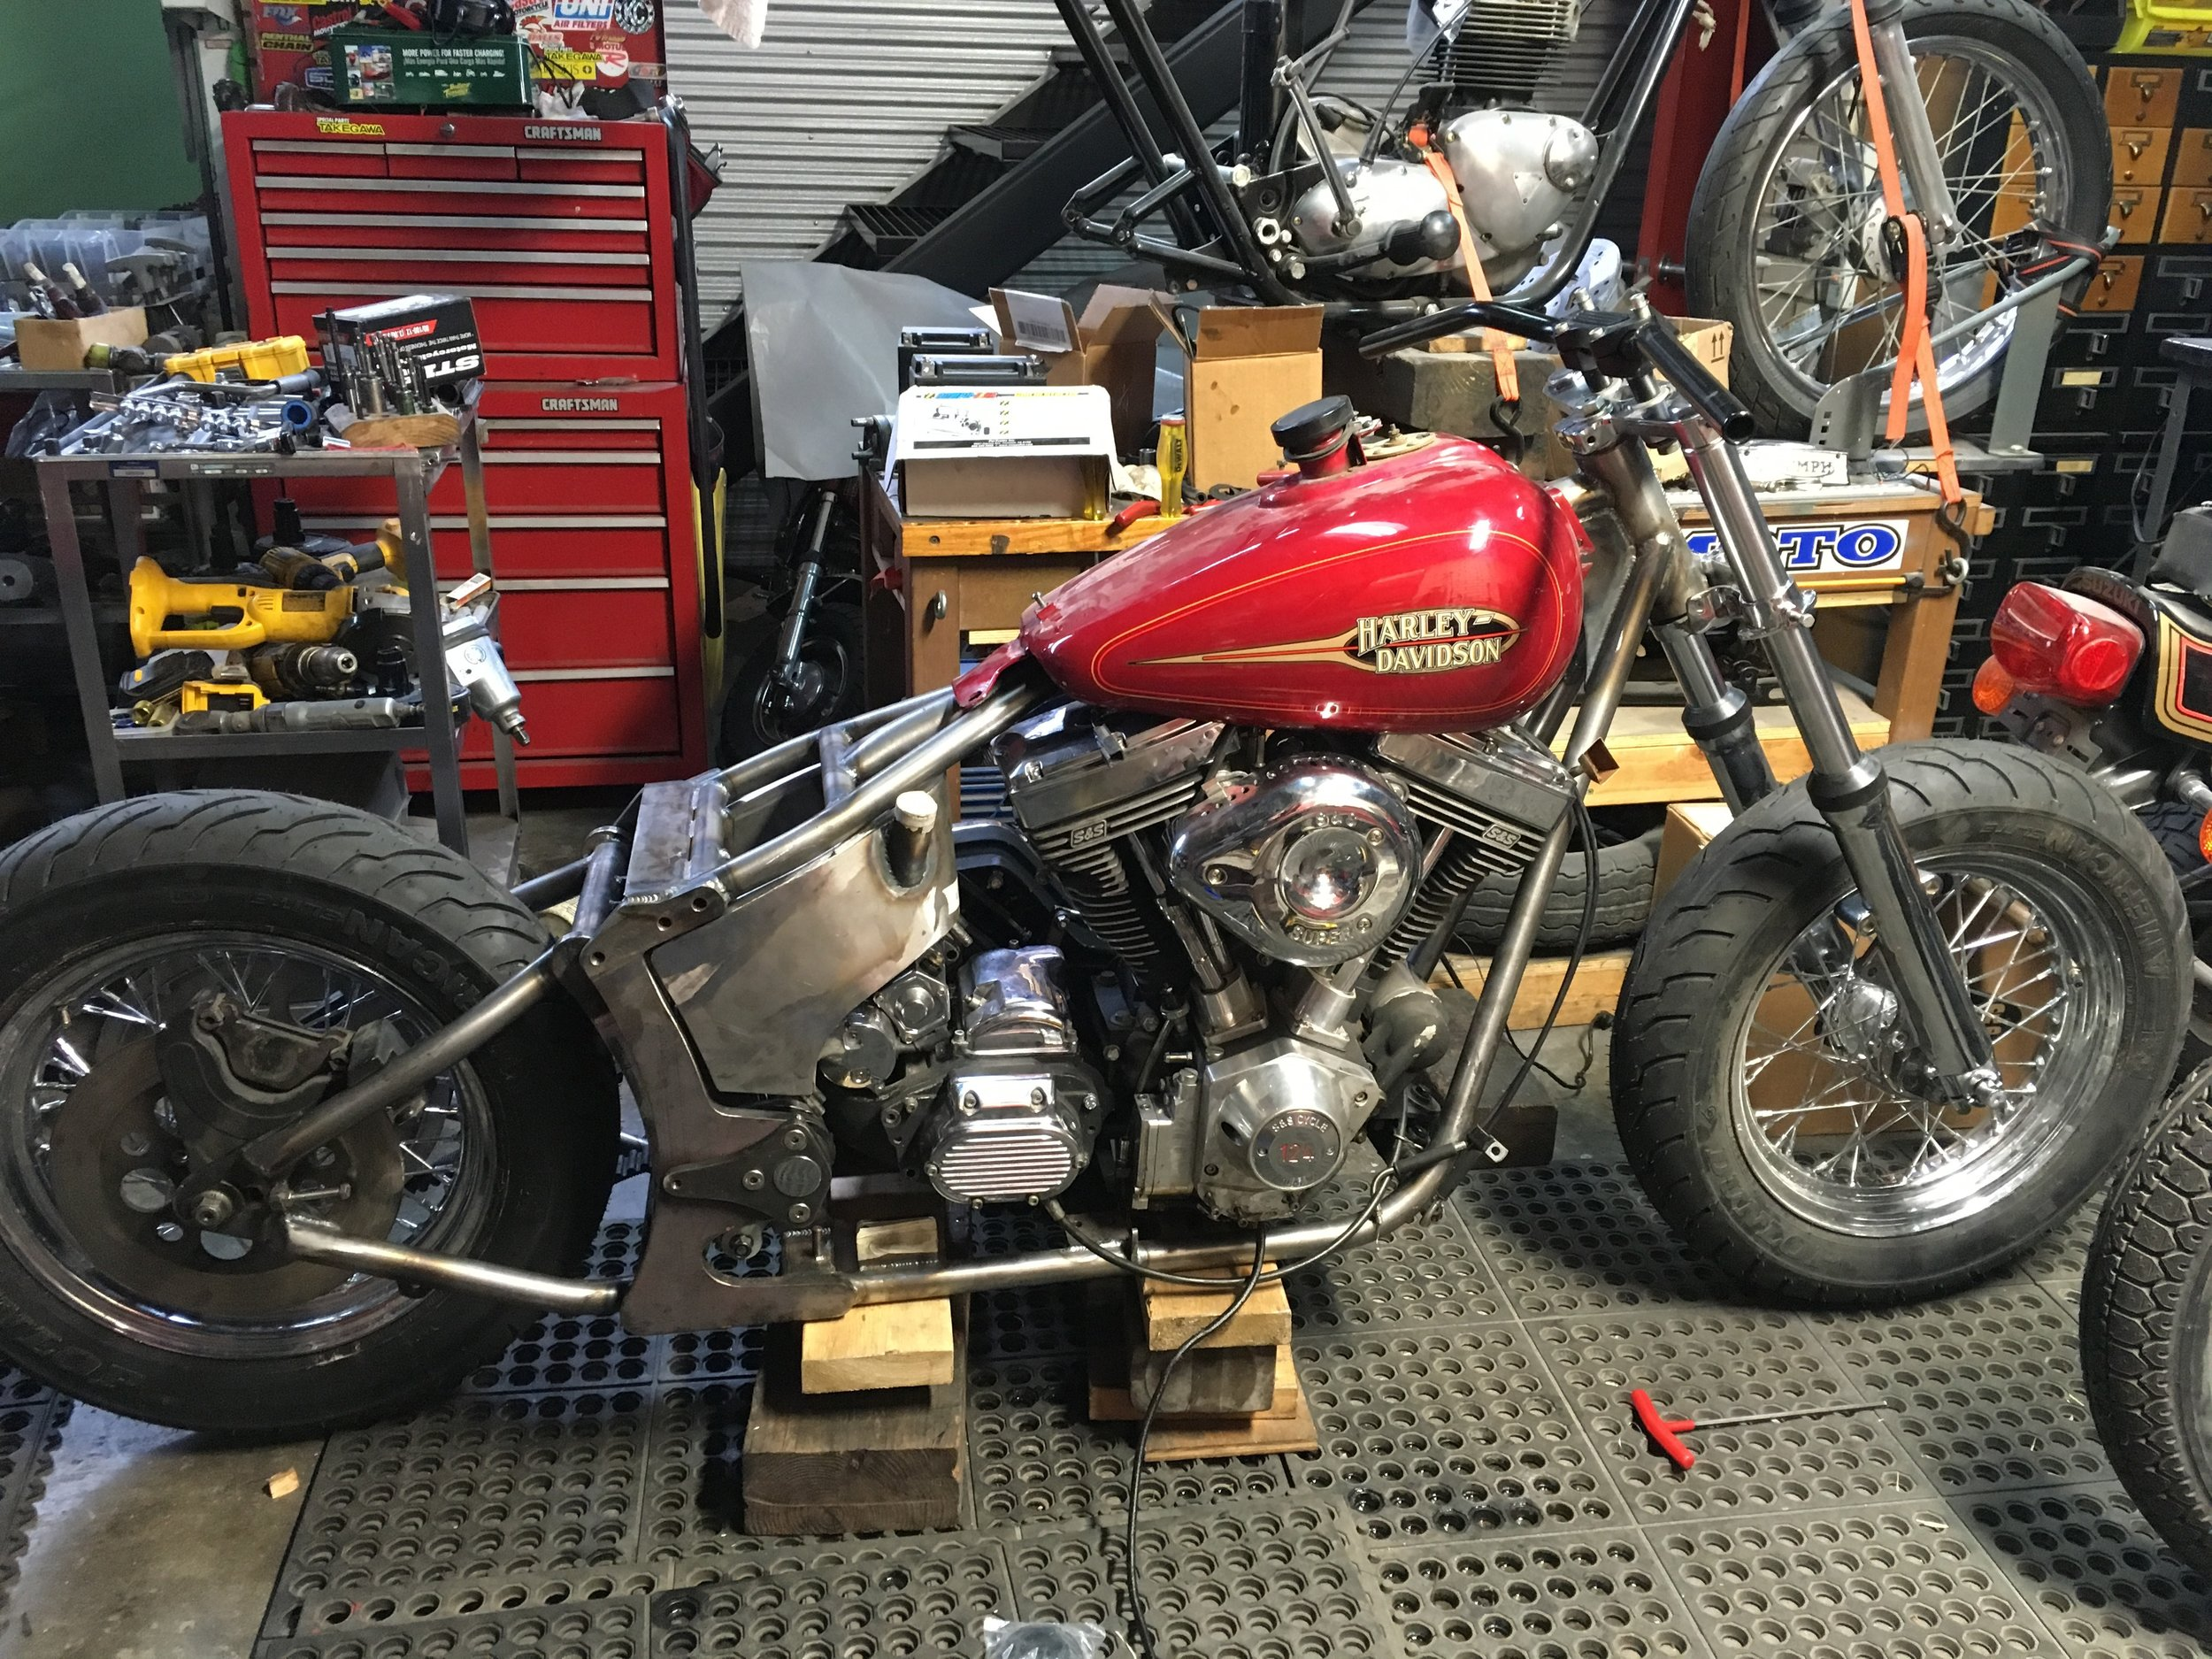 The CCD FXR Softail frame and the S&S 124 powerplant fit together perfectly. A new rear brake caliper bracket is needed along with seat, tank and fender mounts. The belt-drive pulleys and belt will also need replacing.